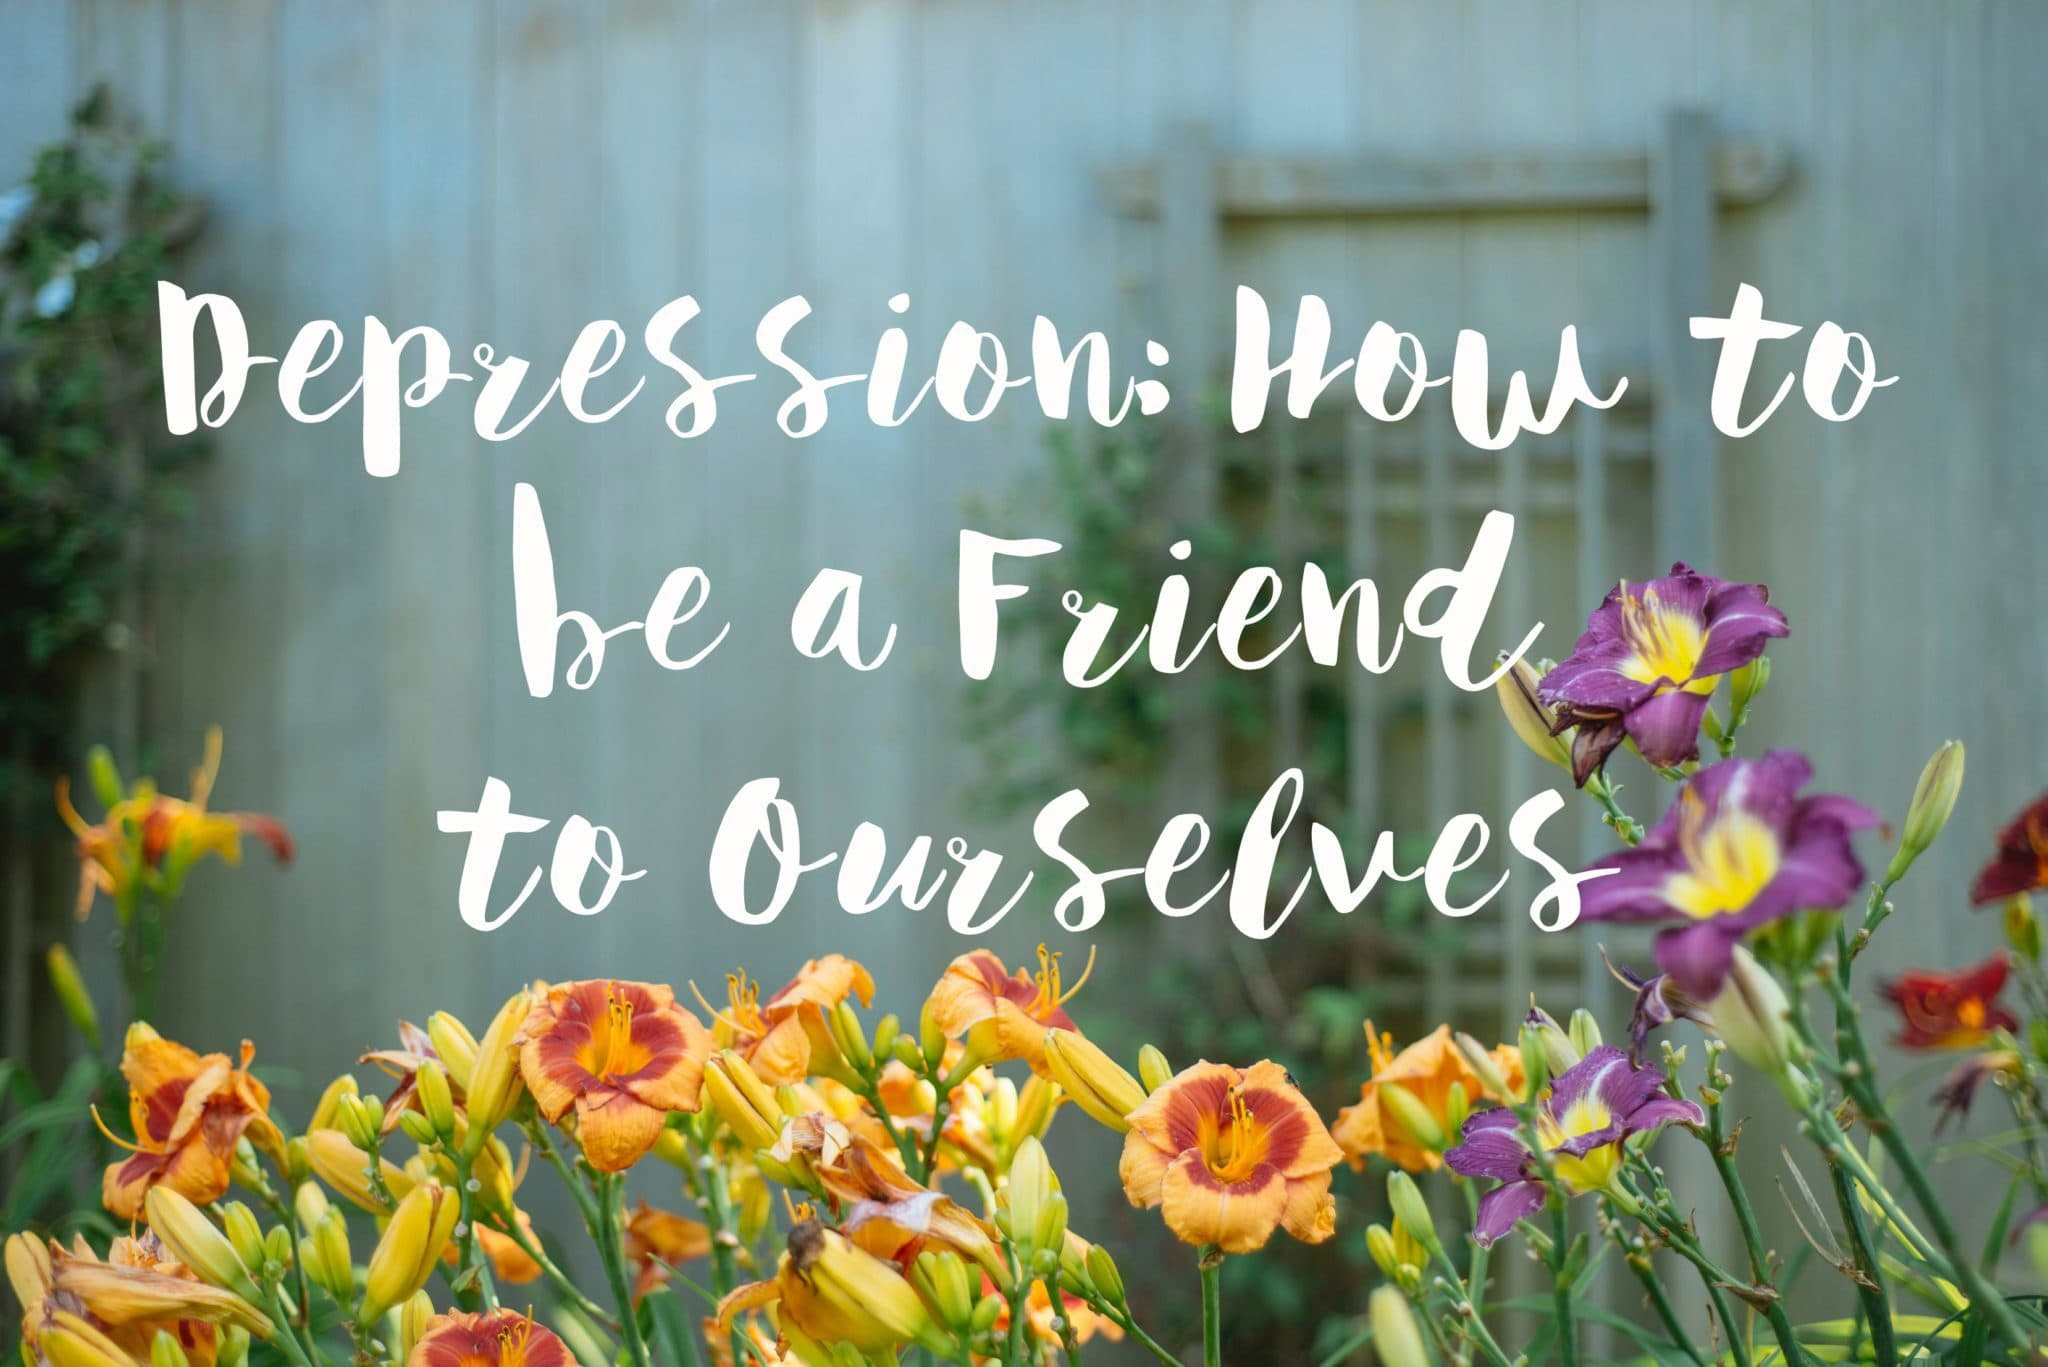 Depression How To Be A Friend To Ourselves